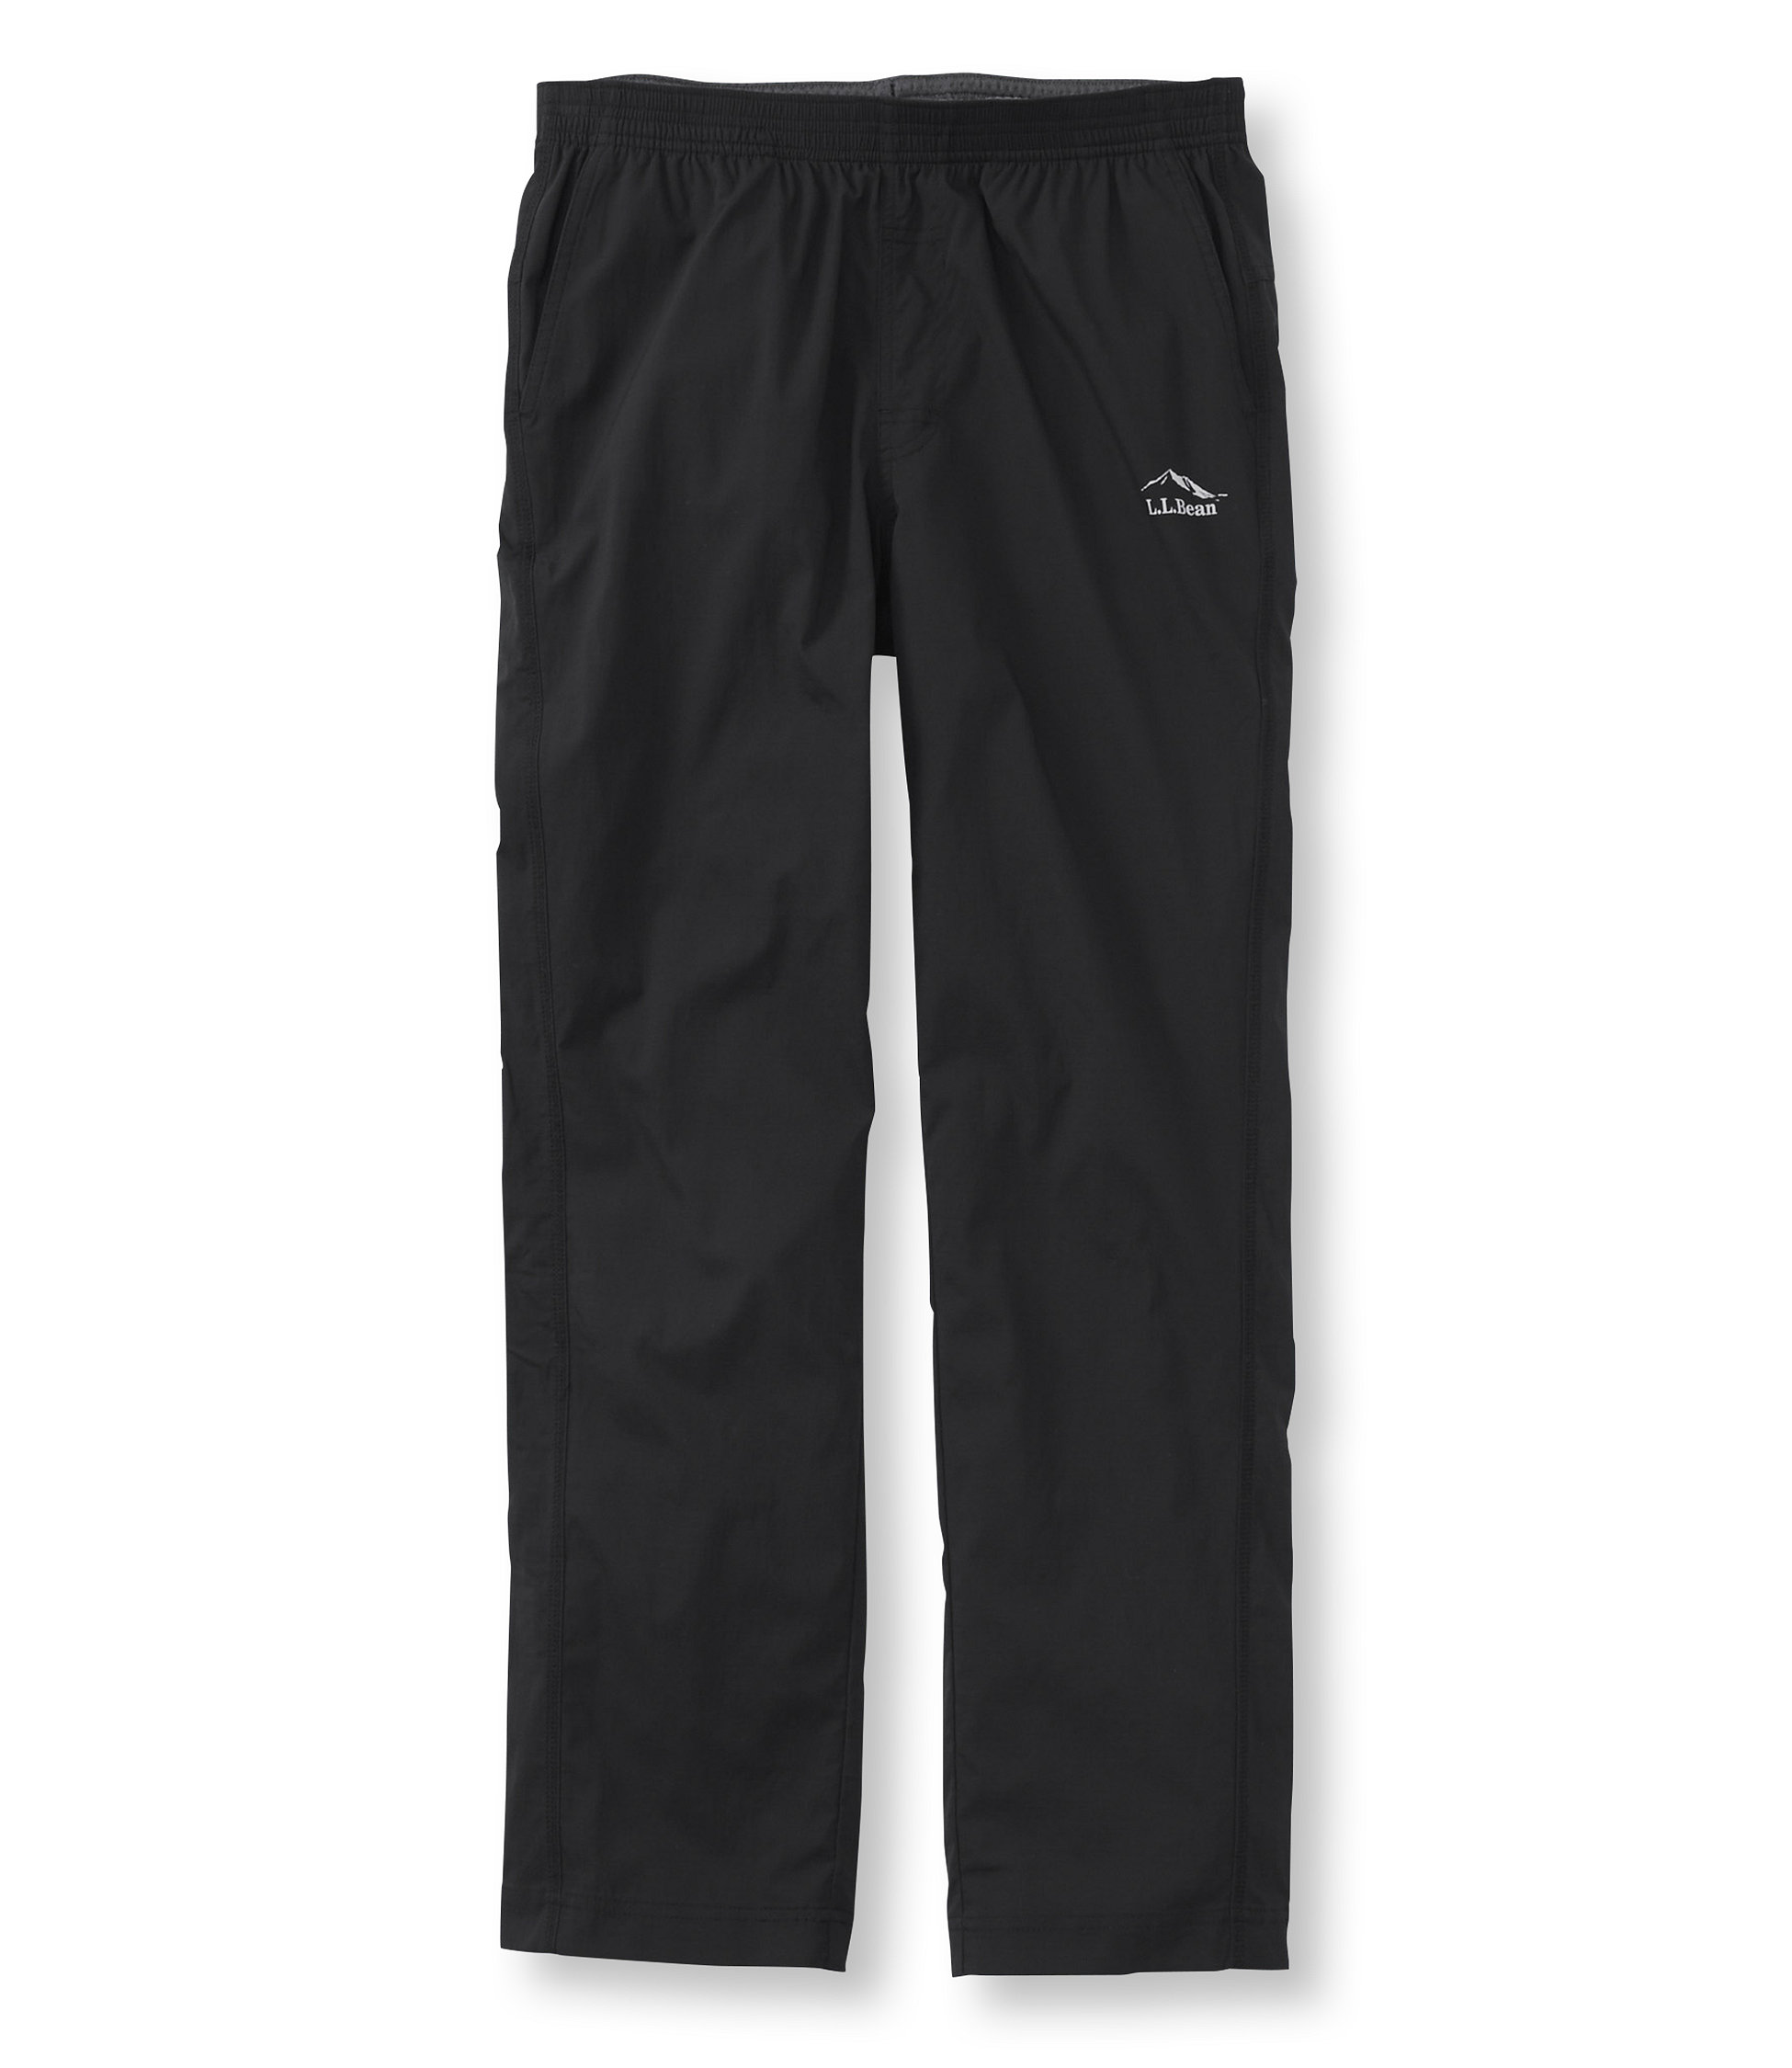 L.L.Bean Multisport Pants